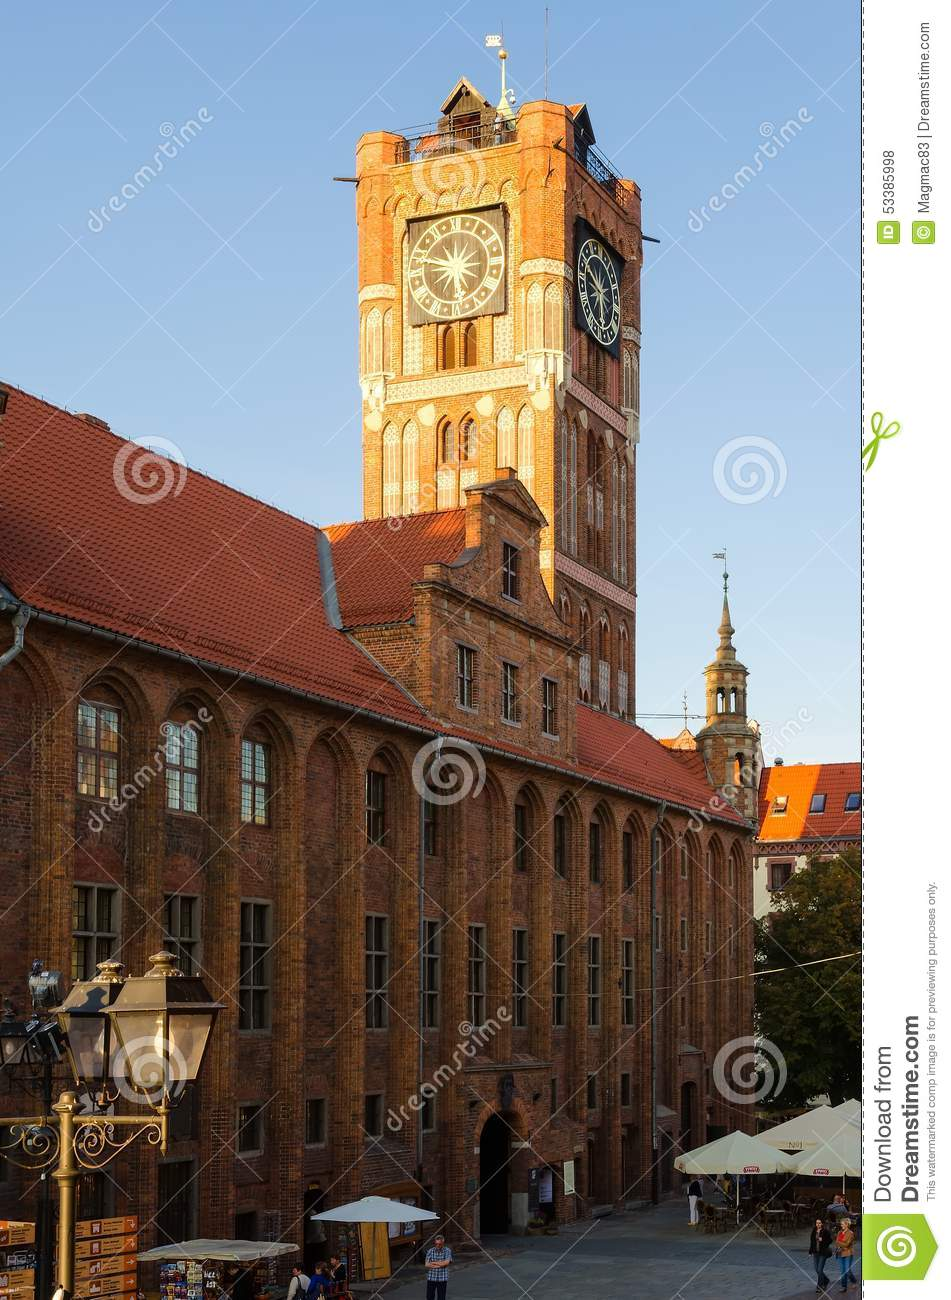 The Old Town Hall in Torun, Poland.